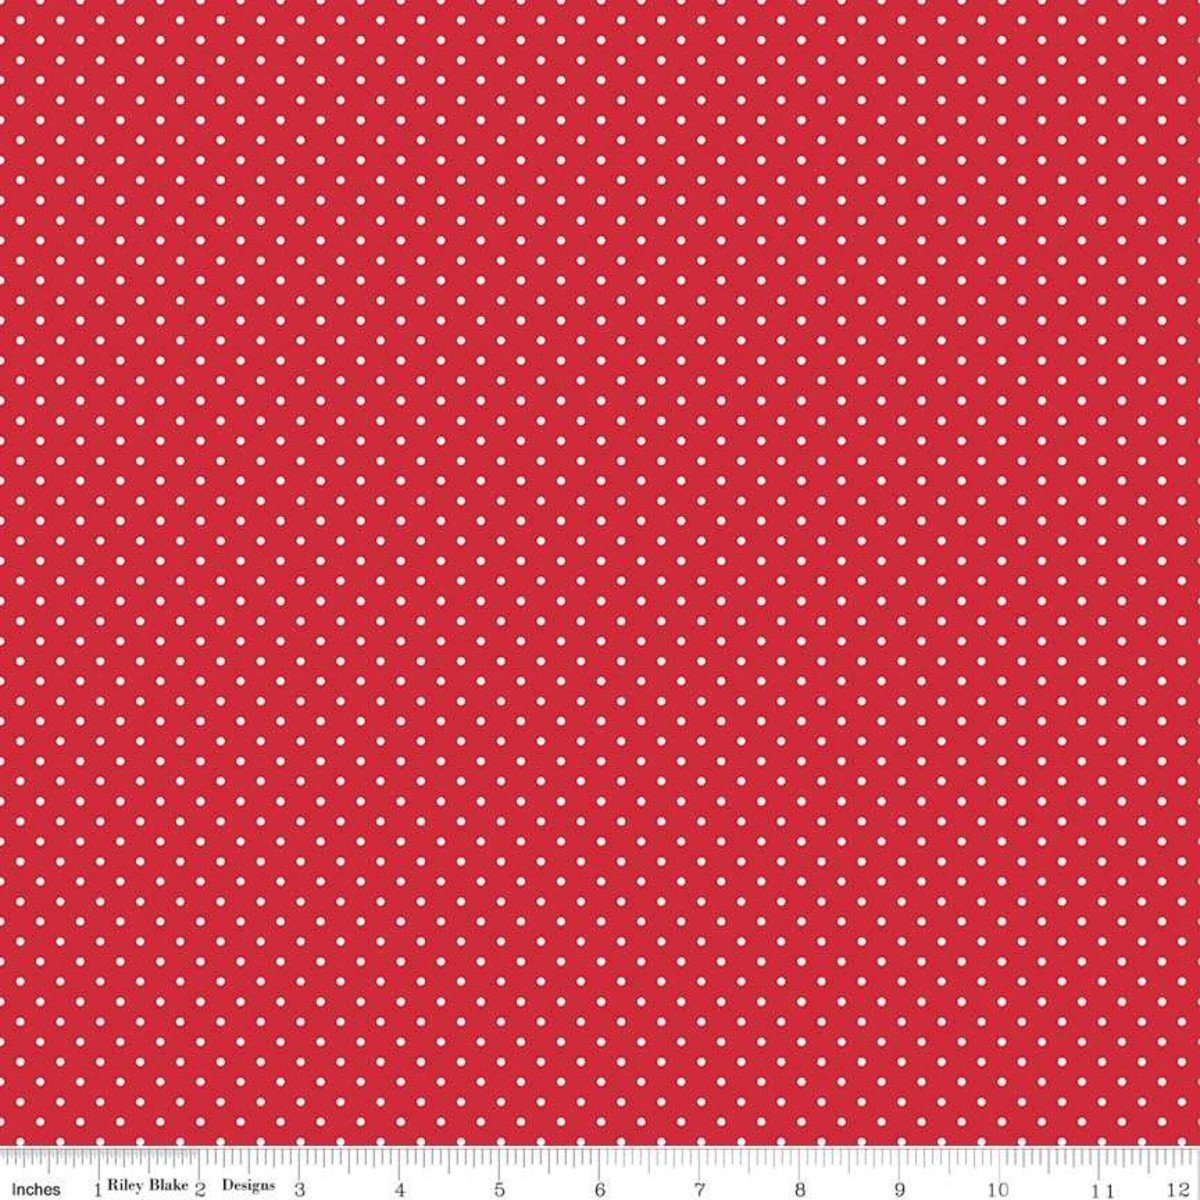 Swiss Dots in Red